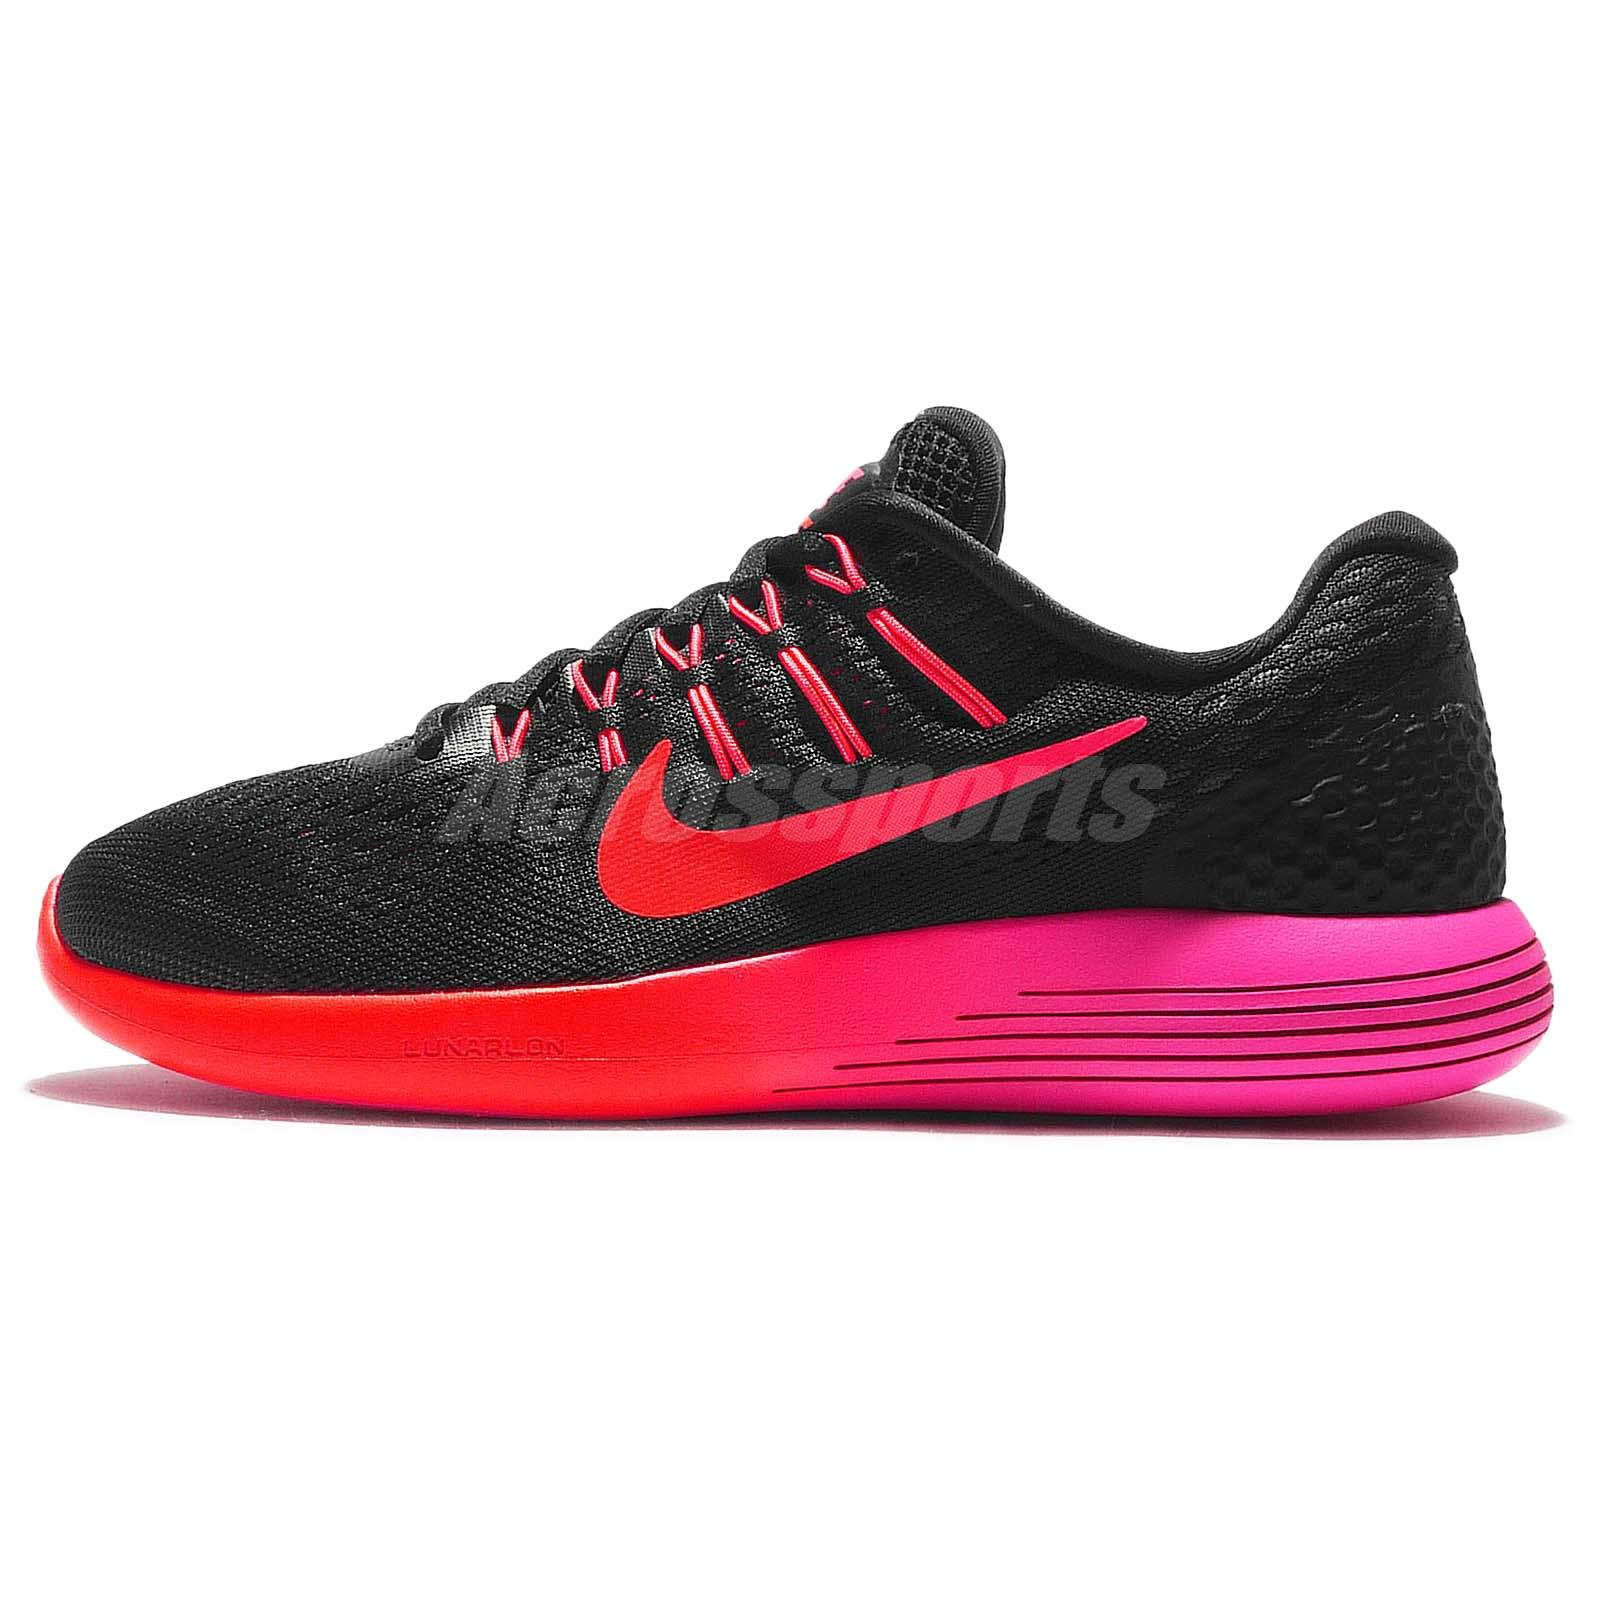 promo code 32f5a 893b6 nike lunarglide 8 red coins